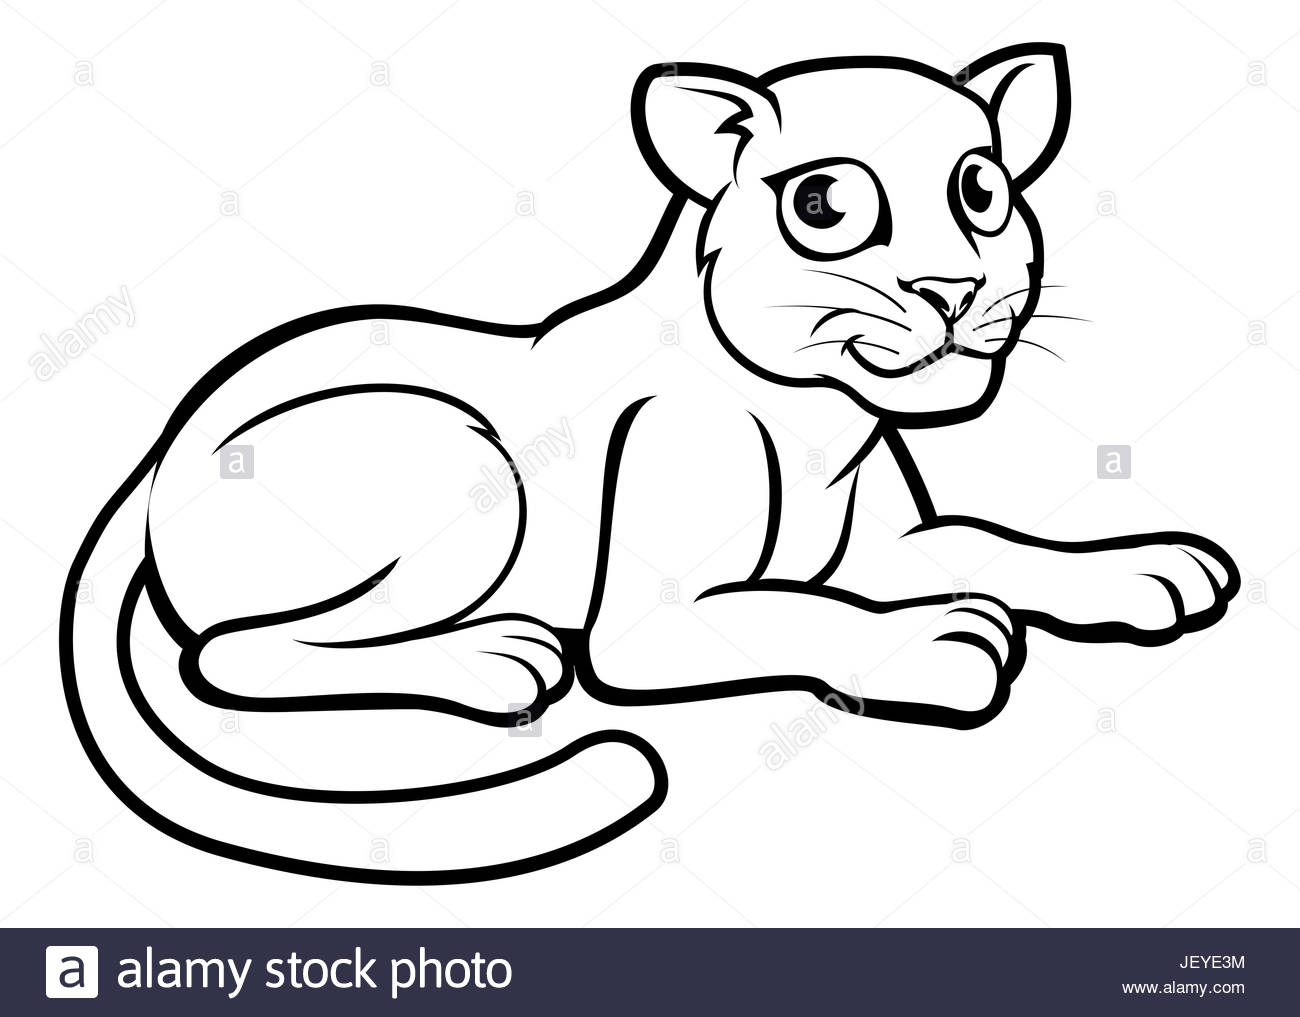 1300x1017 A Leopard, Jaguar Or Panther Cartoon Character Outline Coloring